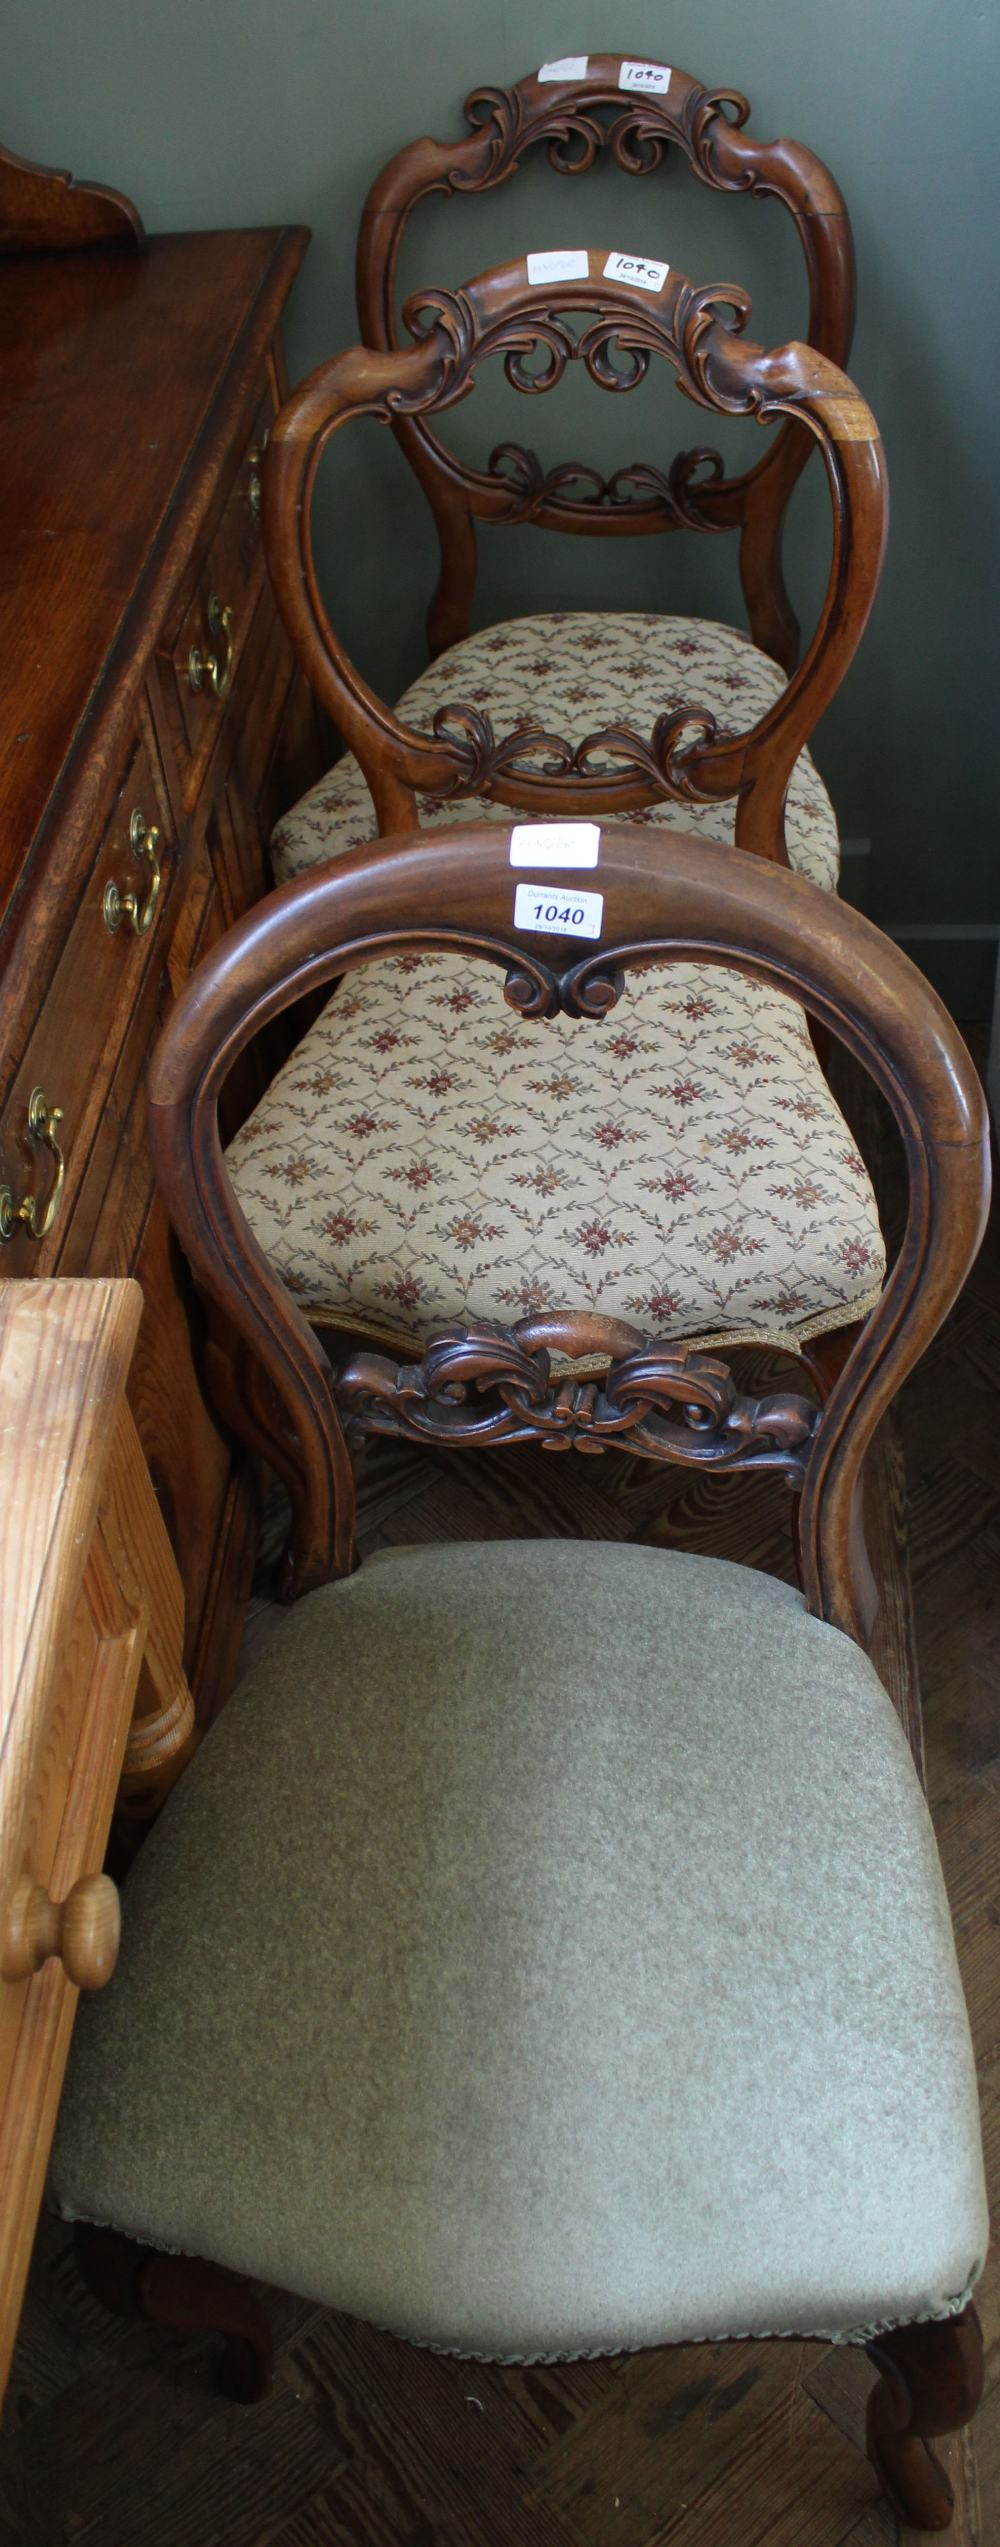 Lot 1040 - A pair of Victorian mahogany balloon back dining chairs and one other